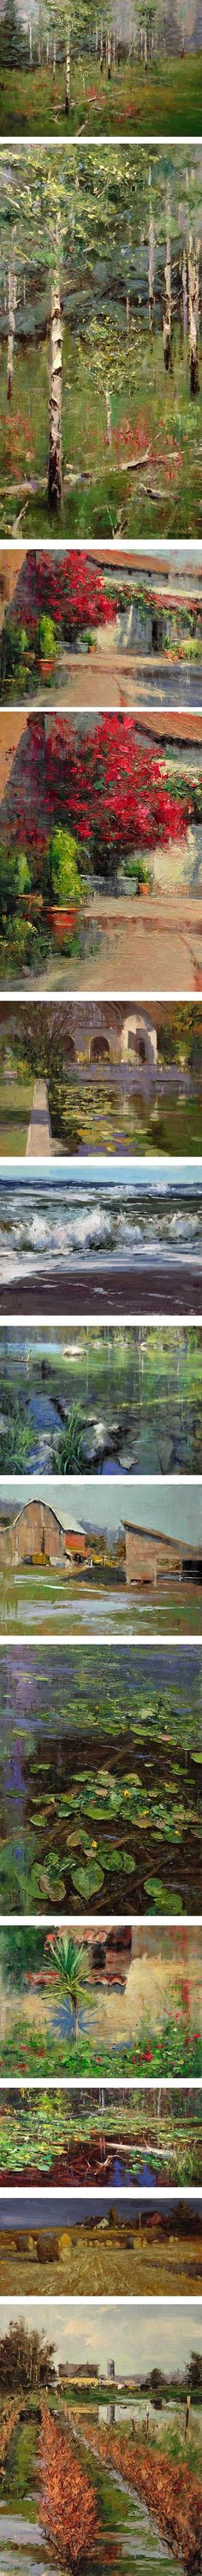 Mike Wise, landscapes